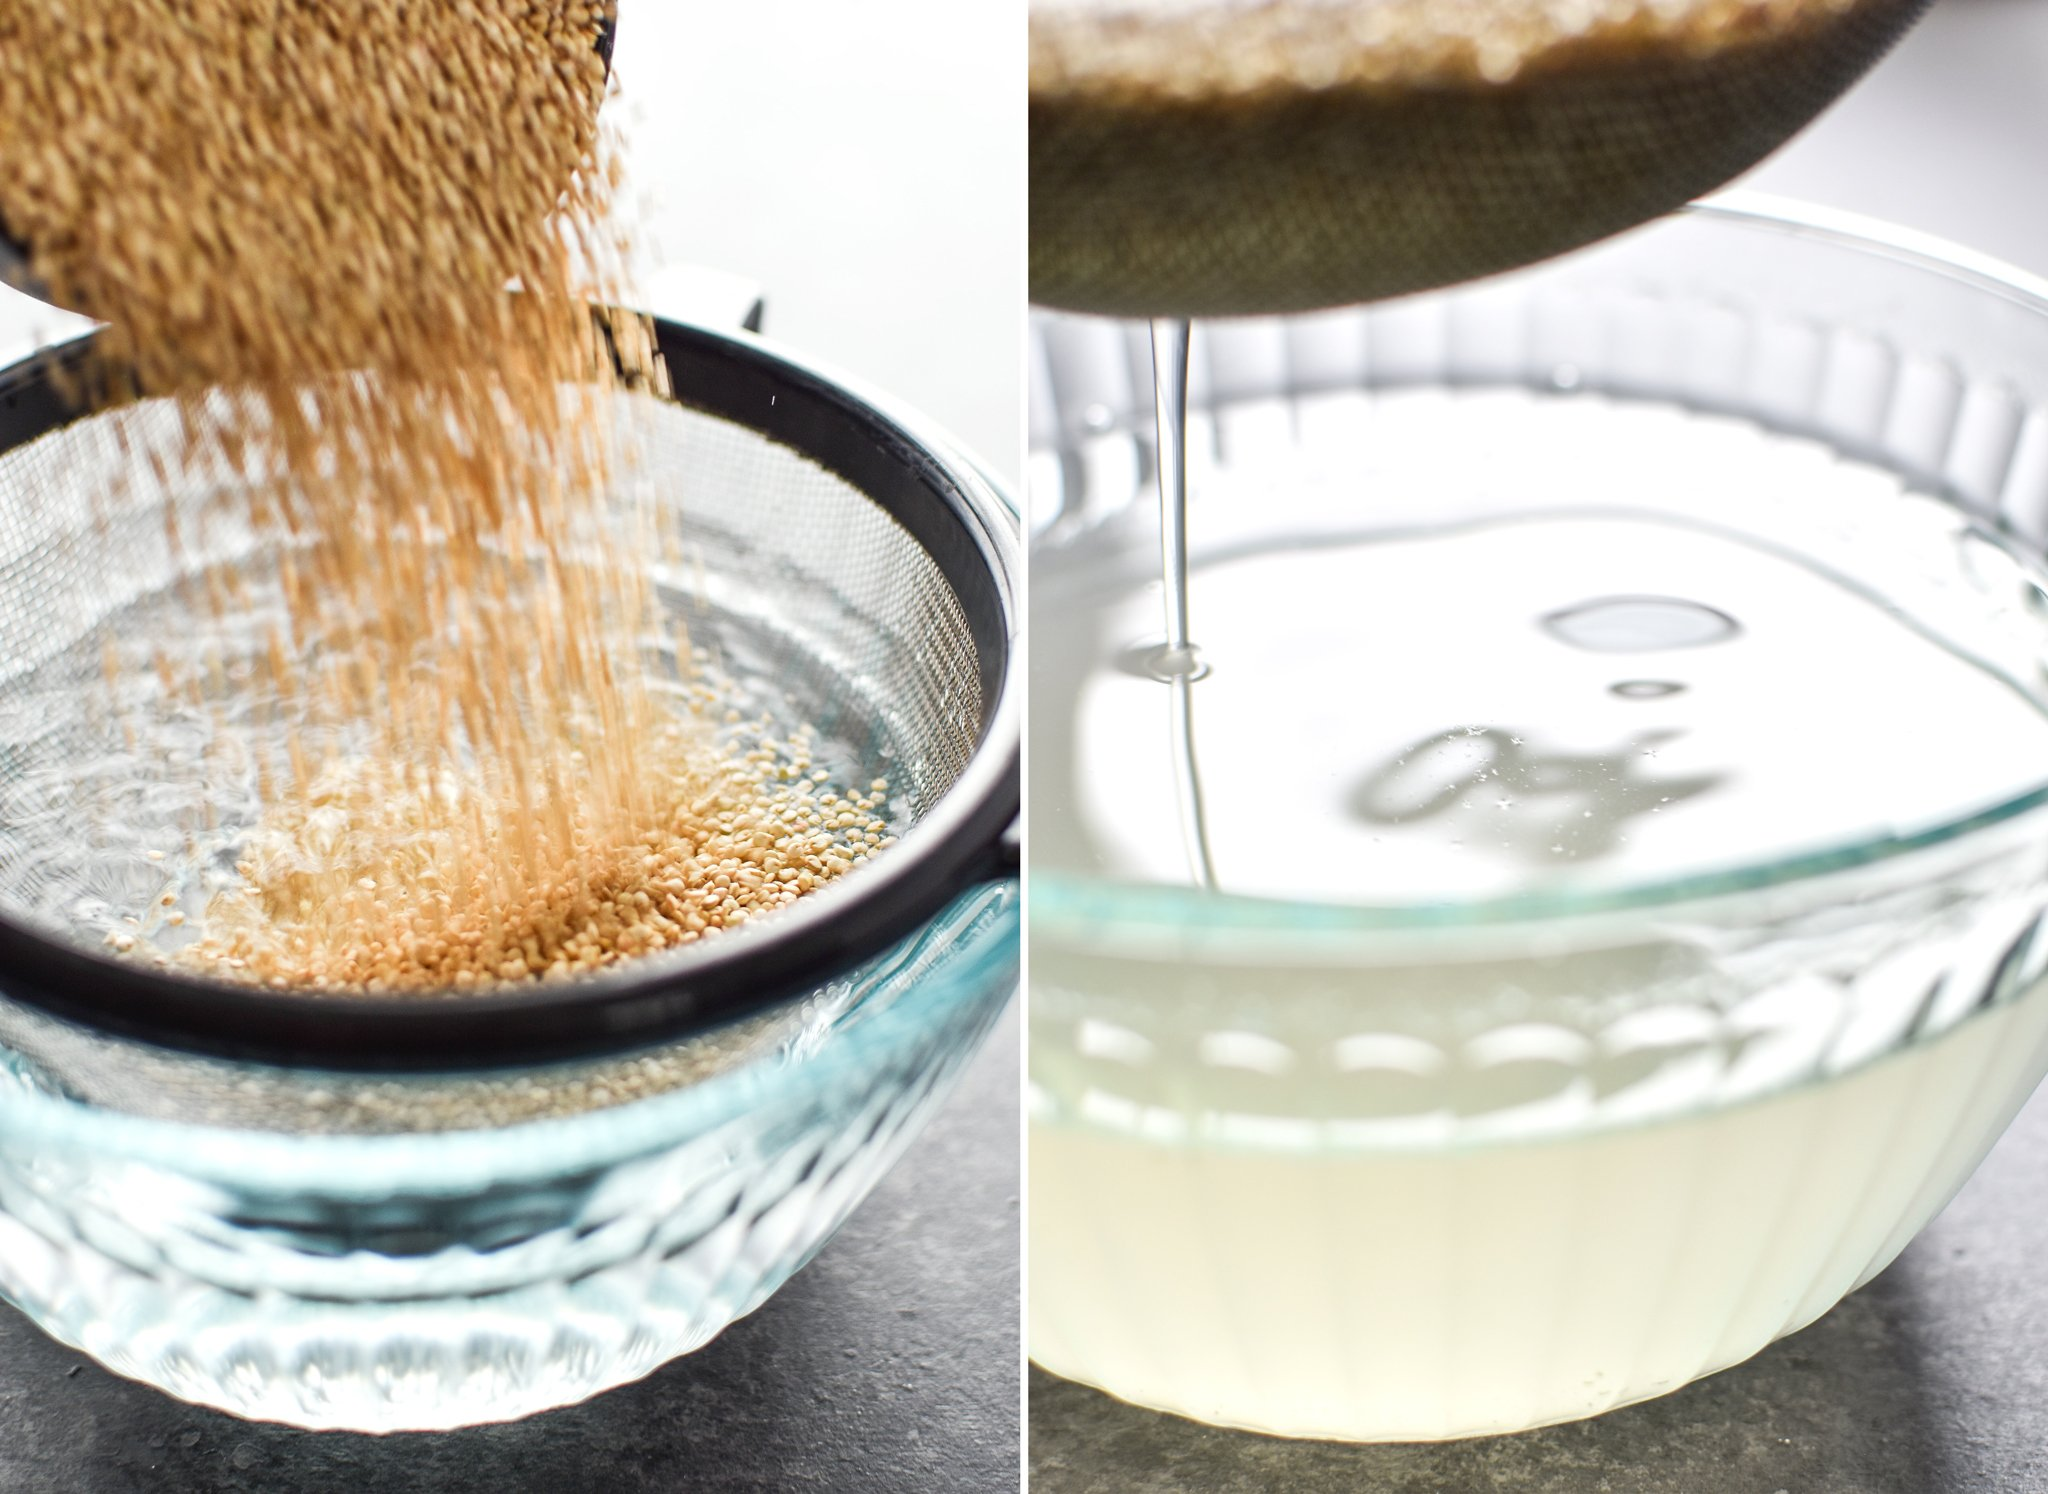 Two photos; Left- quinoa being poured into a fine mesh strainer for rinsing. Right- Quinoa and strainer being lifted out of the bowl of water leaving cloudy water behind.